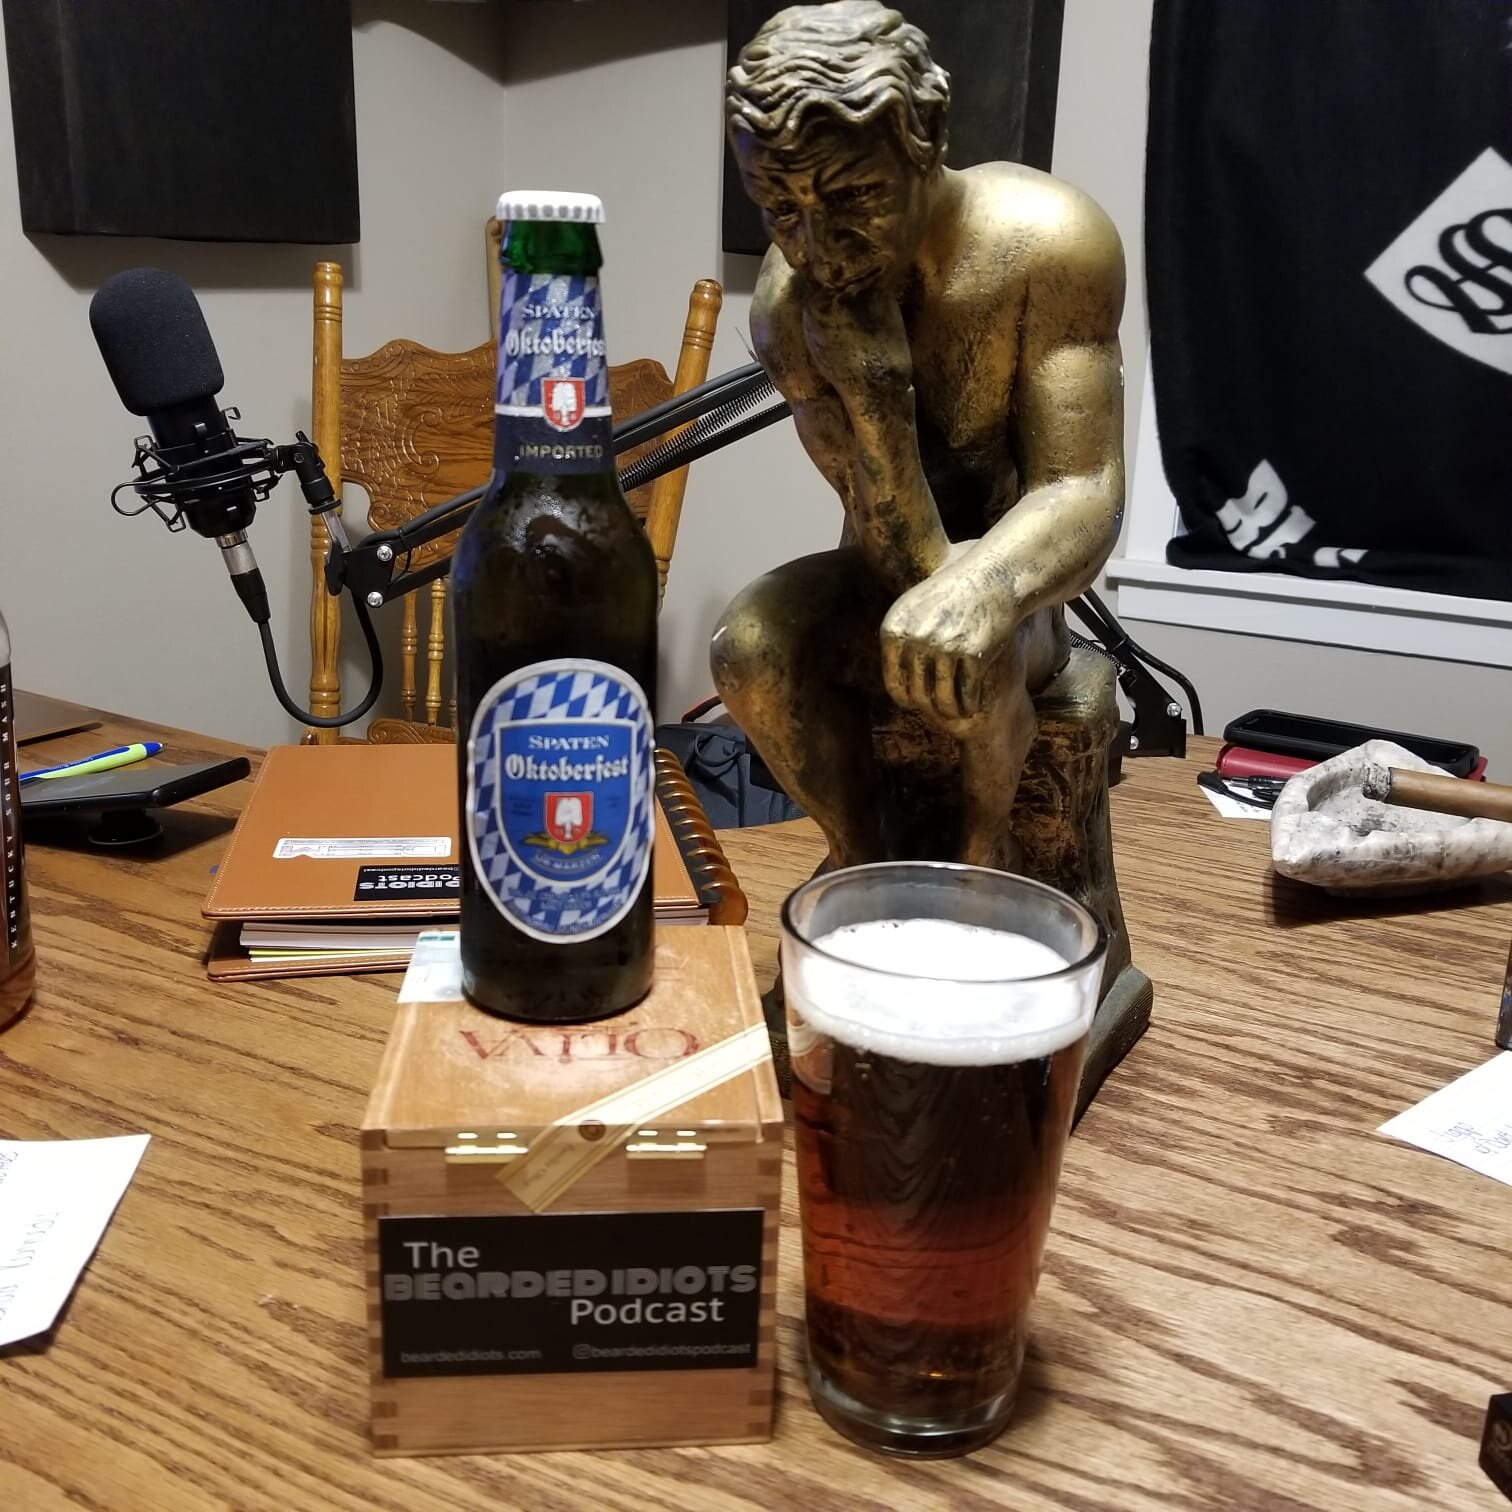 Episode the 72nd - Mushroom Tip - Oktoberfest review, sugar daddies and questions from our Discord users